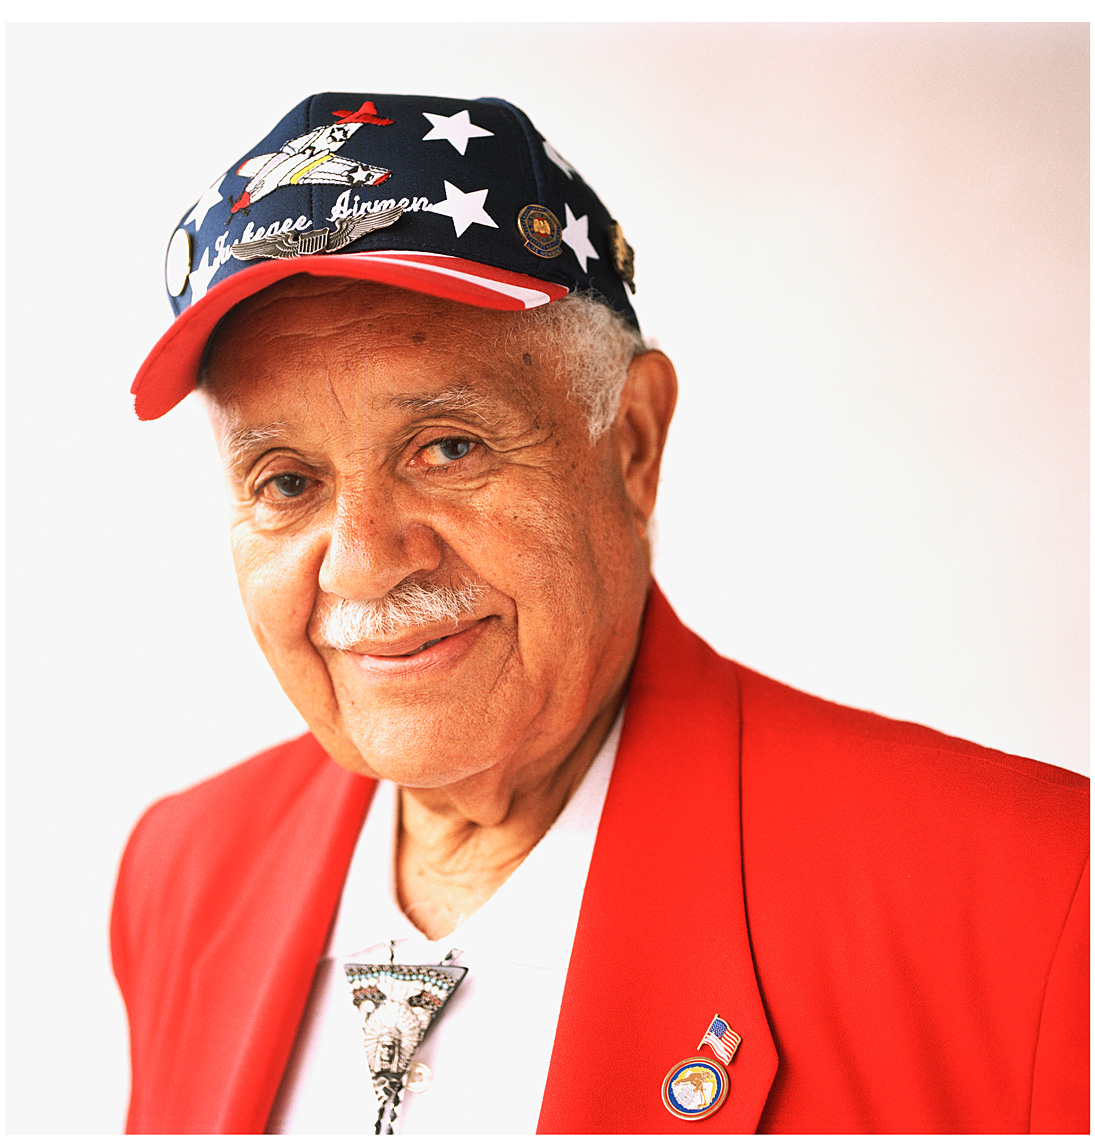 ©Robb Scharetg - WWII Veterans project - US Army Air Corps - Tuskegee Airman